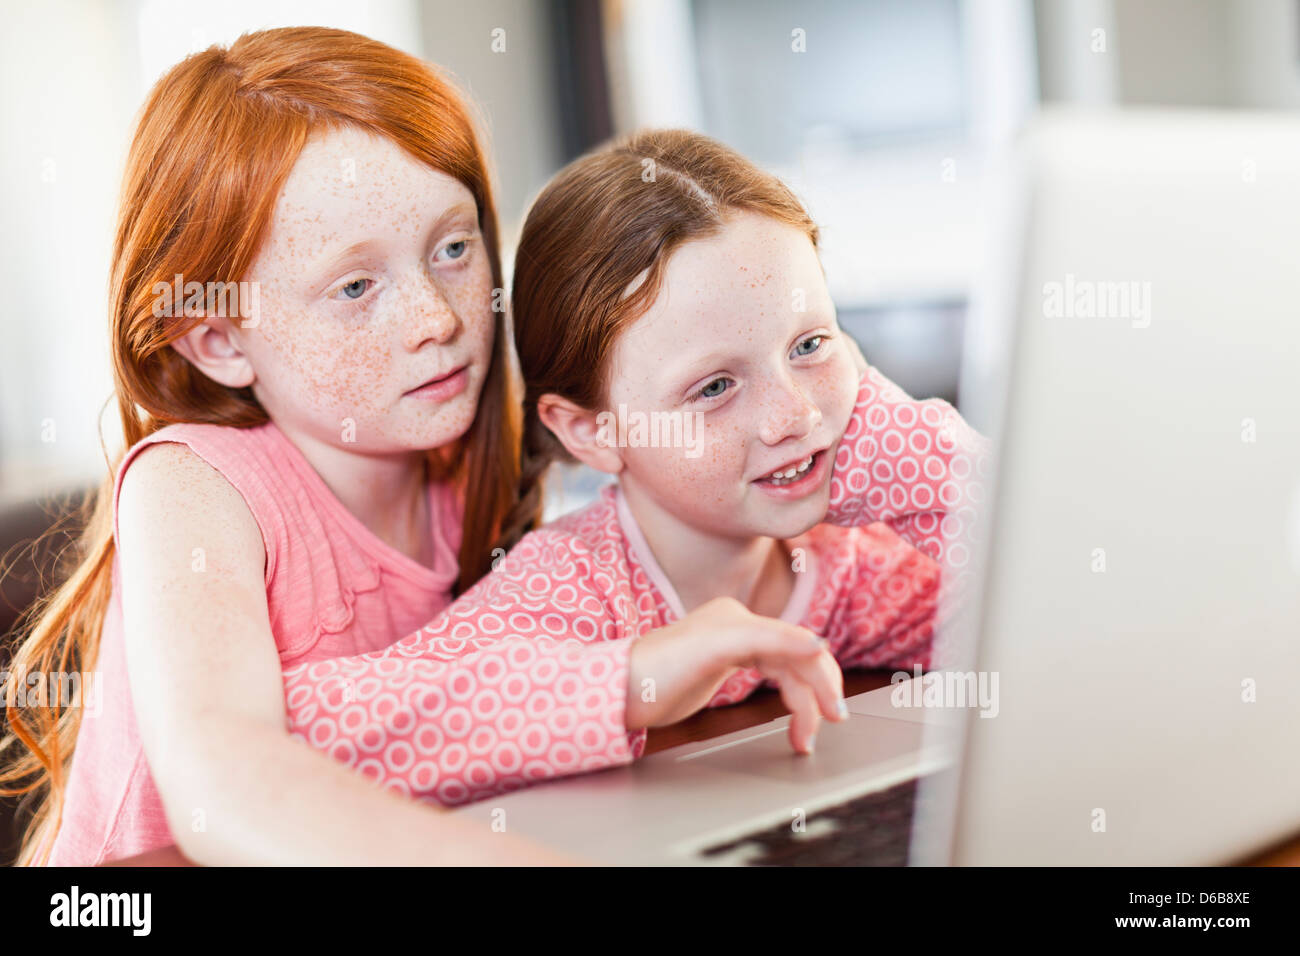 Girls using laptop together - Stock Image